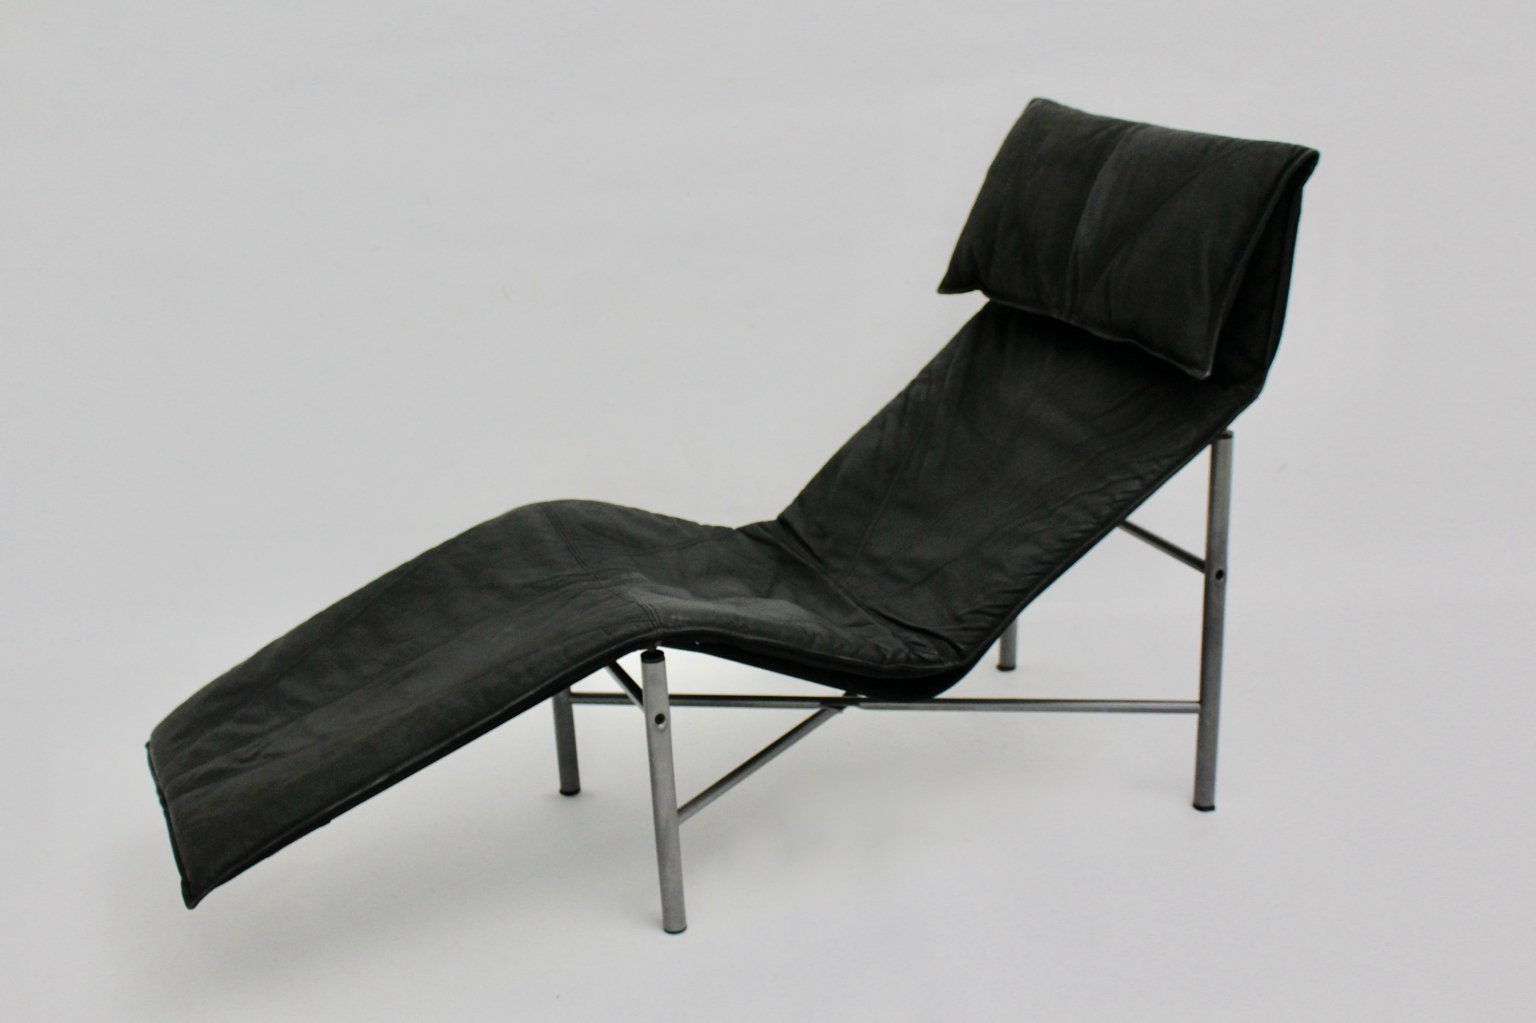 chaise longue manufacturers uk with Black Leather Chaise Longue By Tord Bjorklund 1970 Sweden on Black Leather Chaise Longue By Tord Bjorklund 1970 Sweden together with Black Leather Swivel Recliner Footstool additionally Chaise Longue By Paolo Passerini For Uvet 1985 also Chaise Longue By Rob Eckhardt For Dutch Originals  herlands 1980s also Rgs Tessuto Budapest.